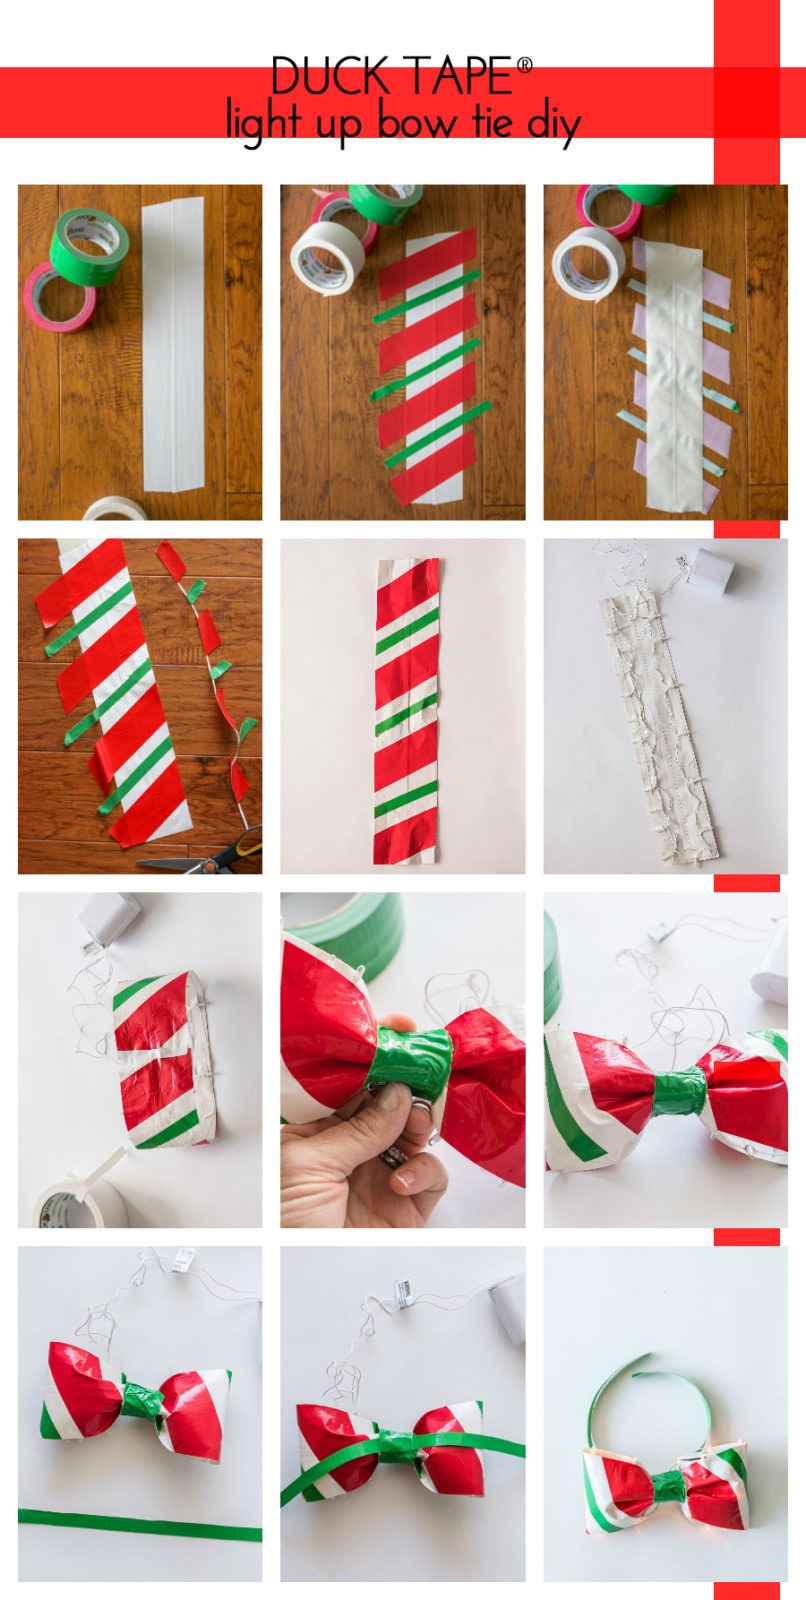 how to make a light up bowtie from Duck Tape